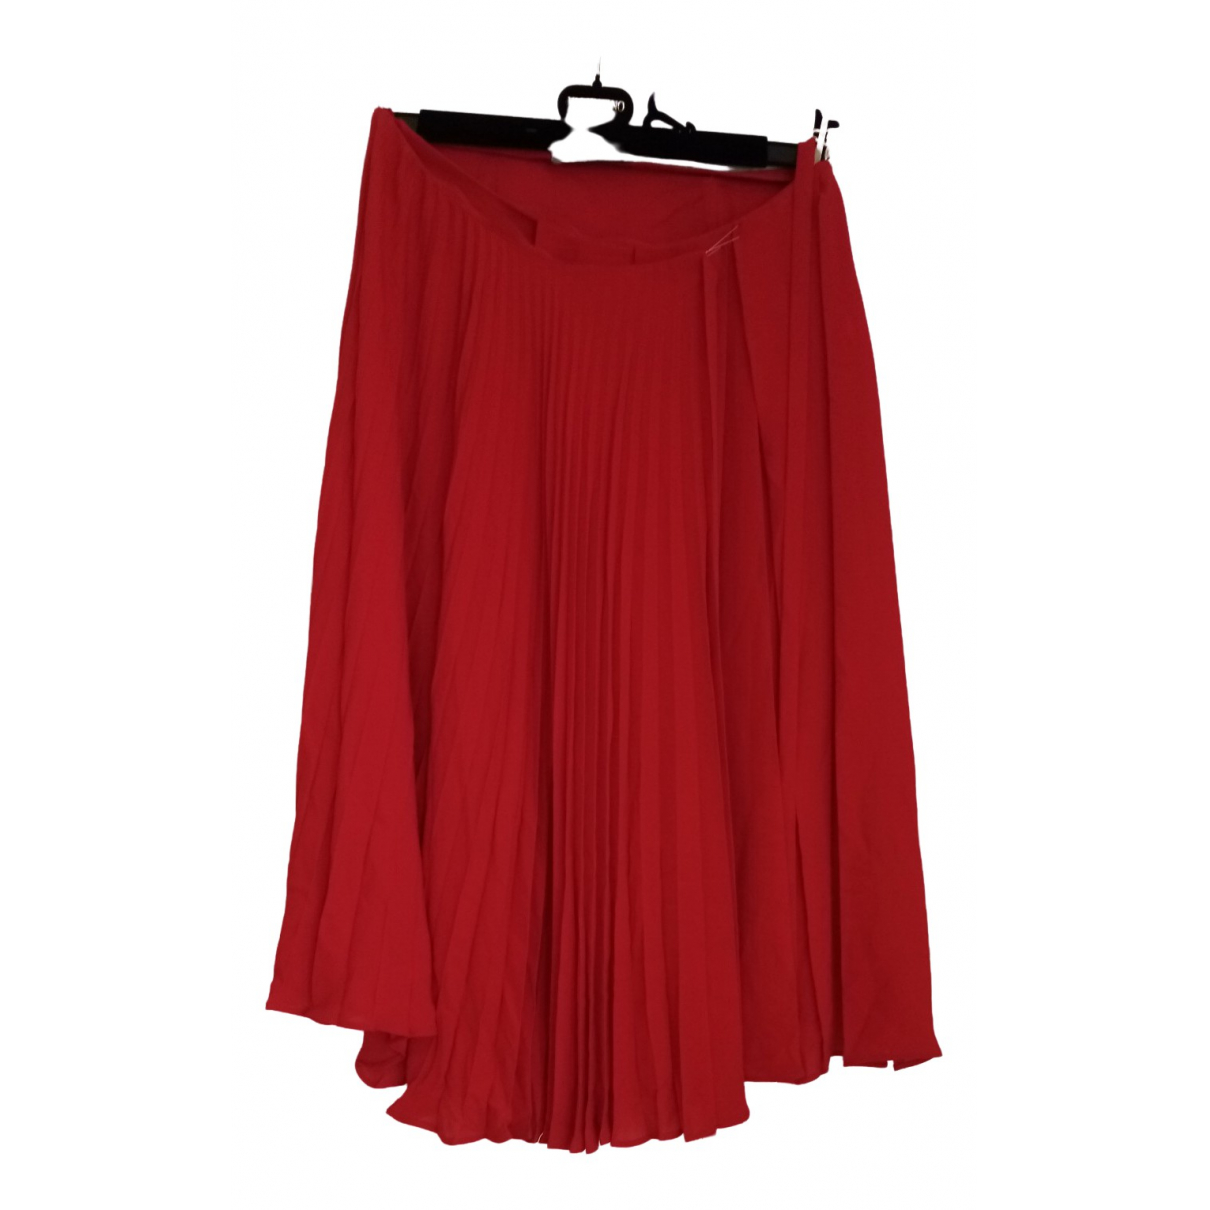 Valentino Garavani \N Red skirt for Women 42 FR